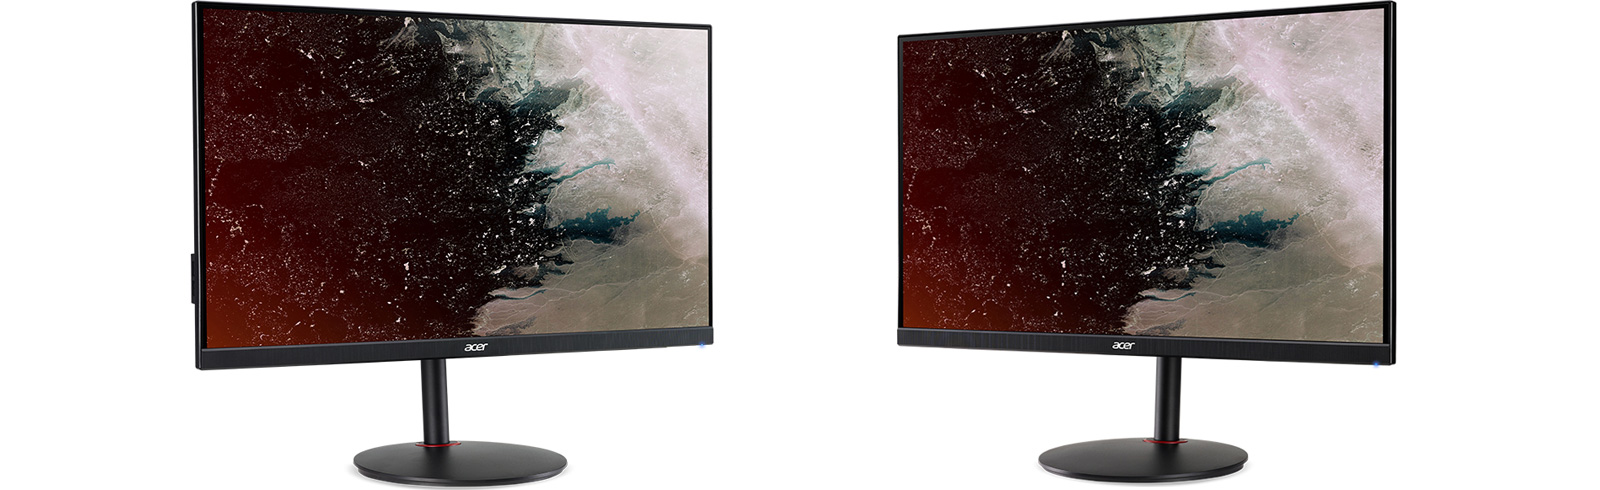 The Acer XV272U X with a Fast IPS QHD 240Hz panel from AUO will launch soon